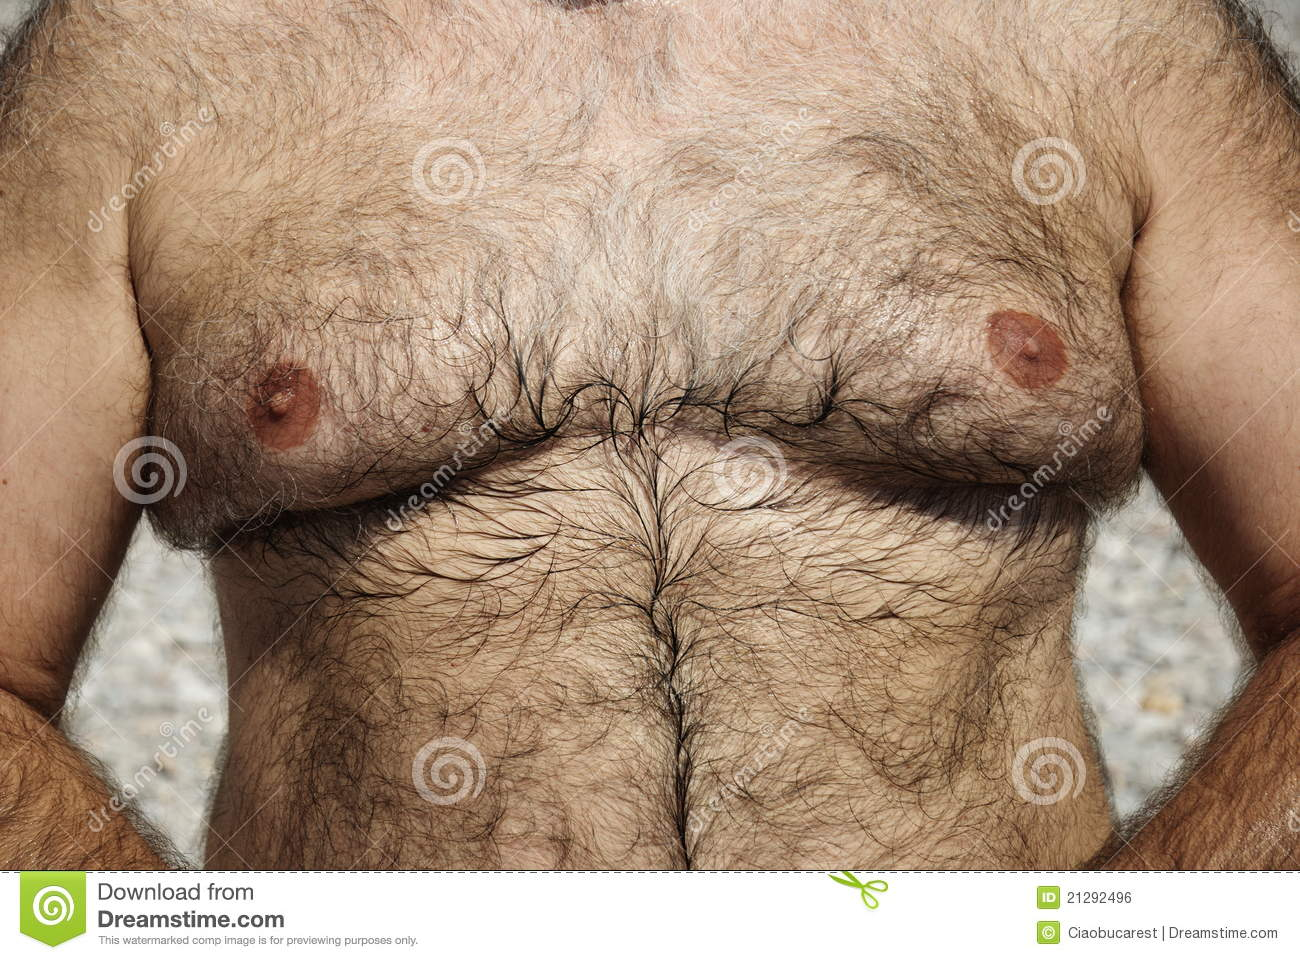 hairy chest of overweight man royalty free stock image clipart of key fob check in clip art of keys on a change